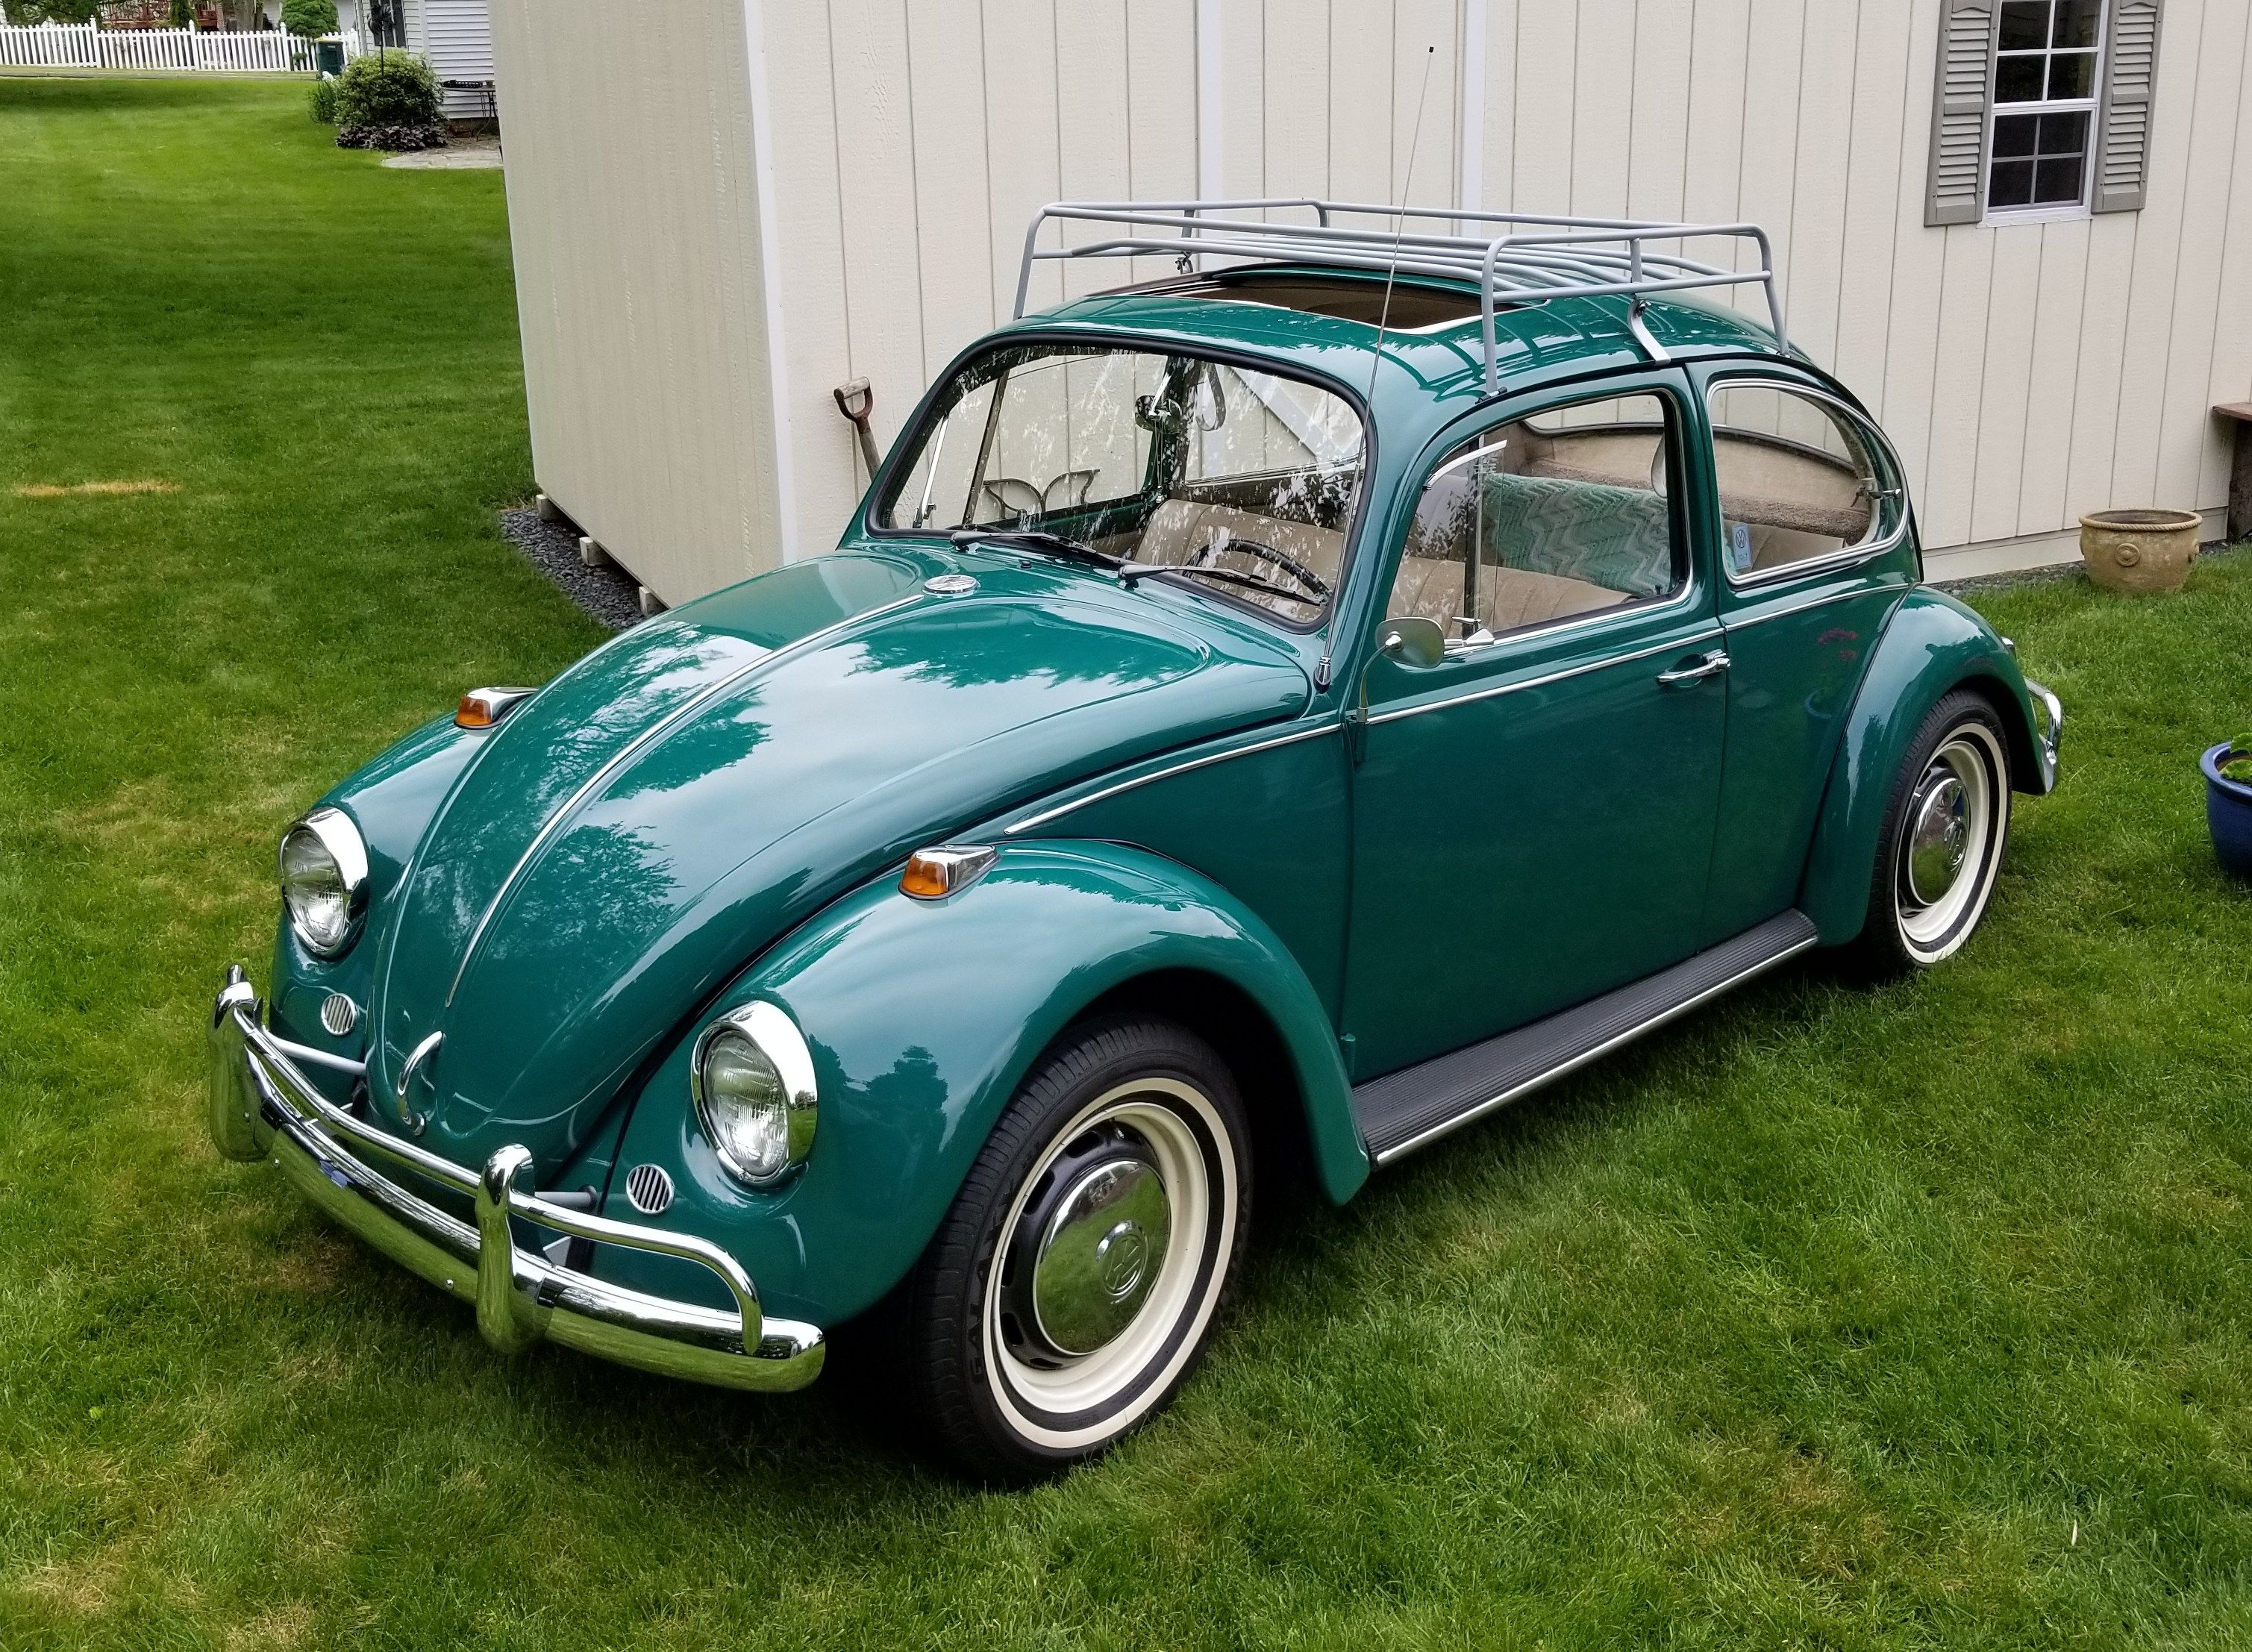 Lela Strysky's L518 Java Green '67 Beetle 1967 VW BEETLE